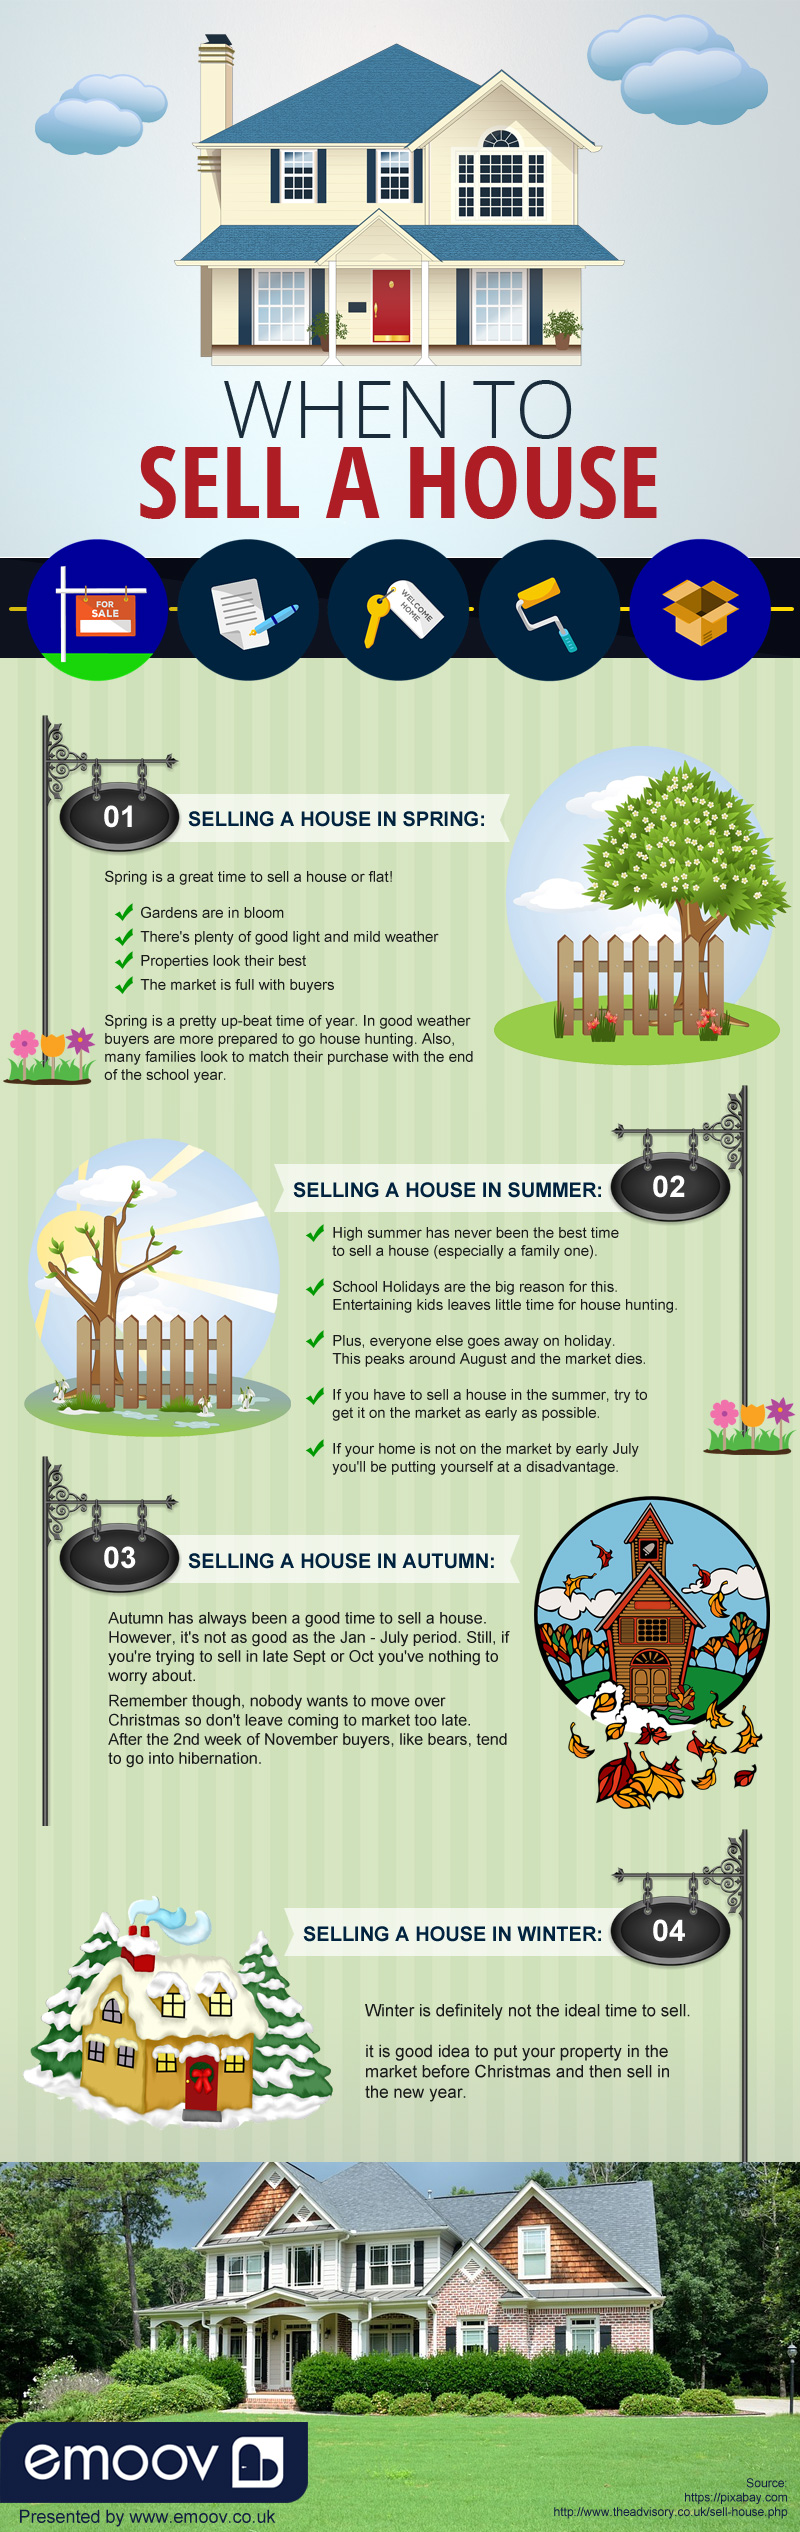 When to Sell a House